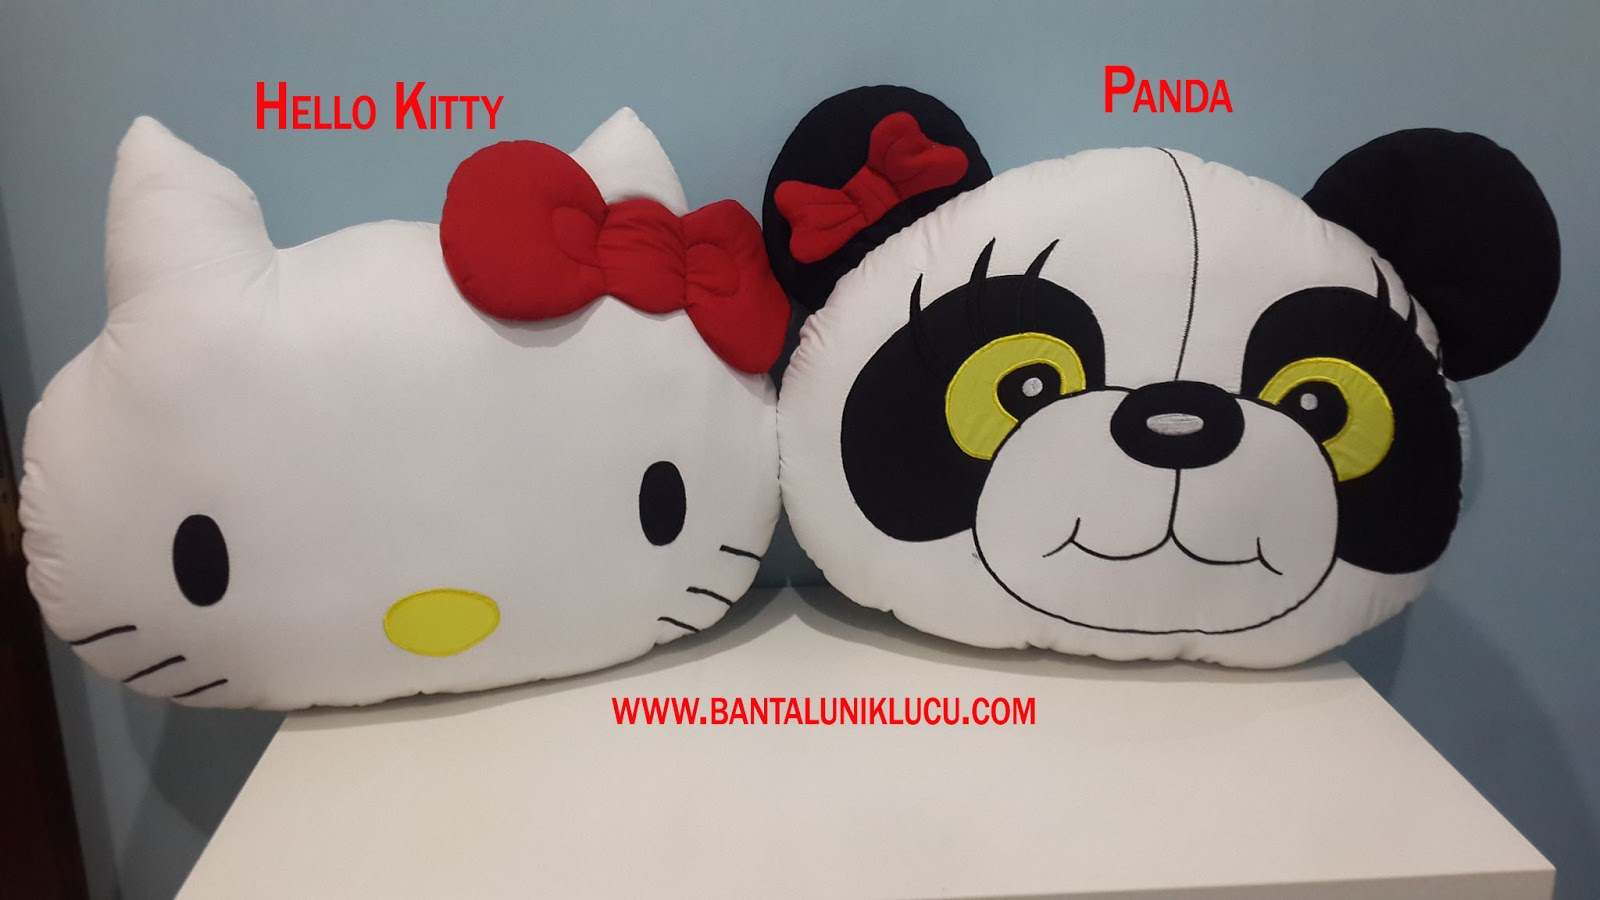 Bantal Lala Little Twin Stars Bantal Unik Lucu